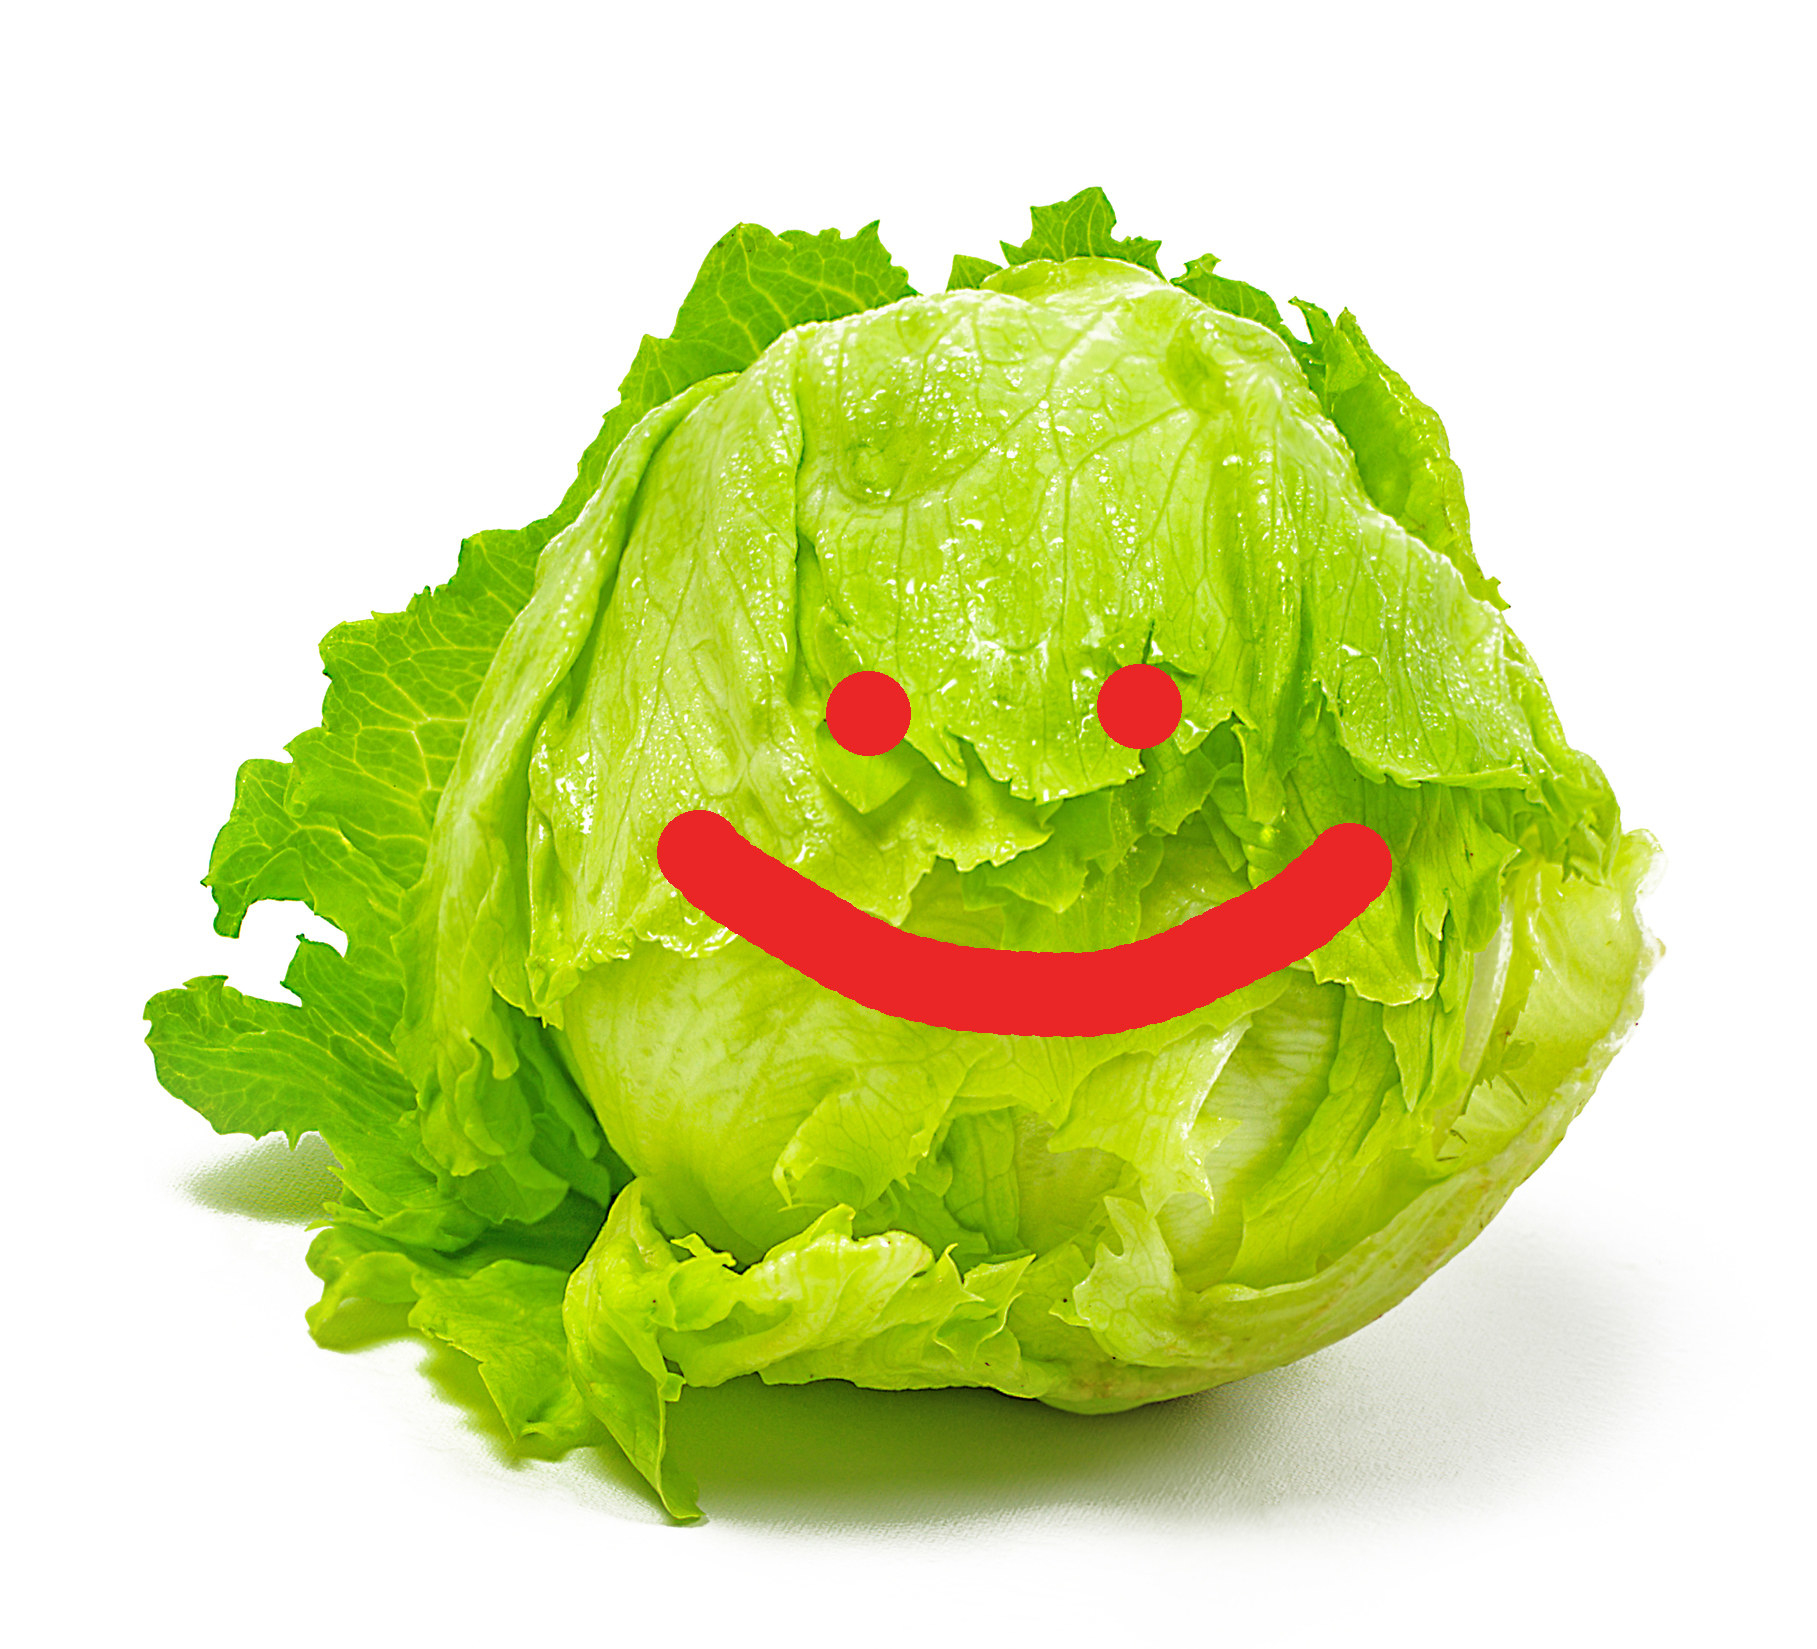 A head of lettuce with a cute smiley face drawn on